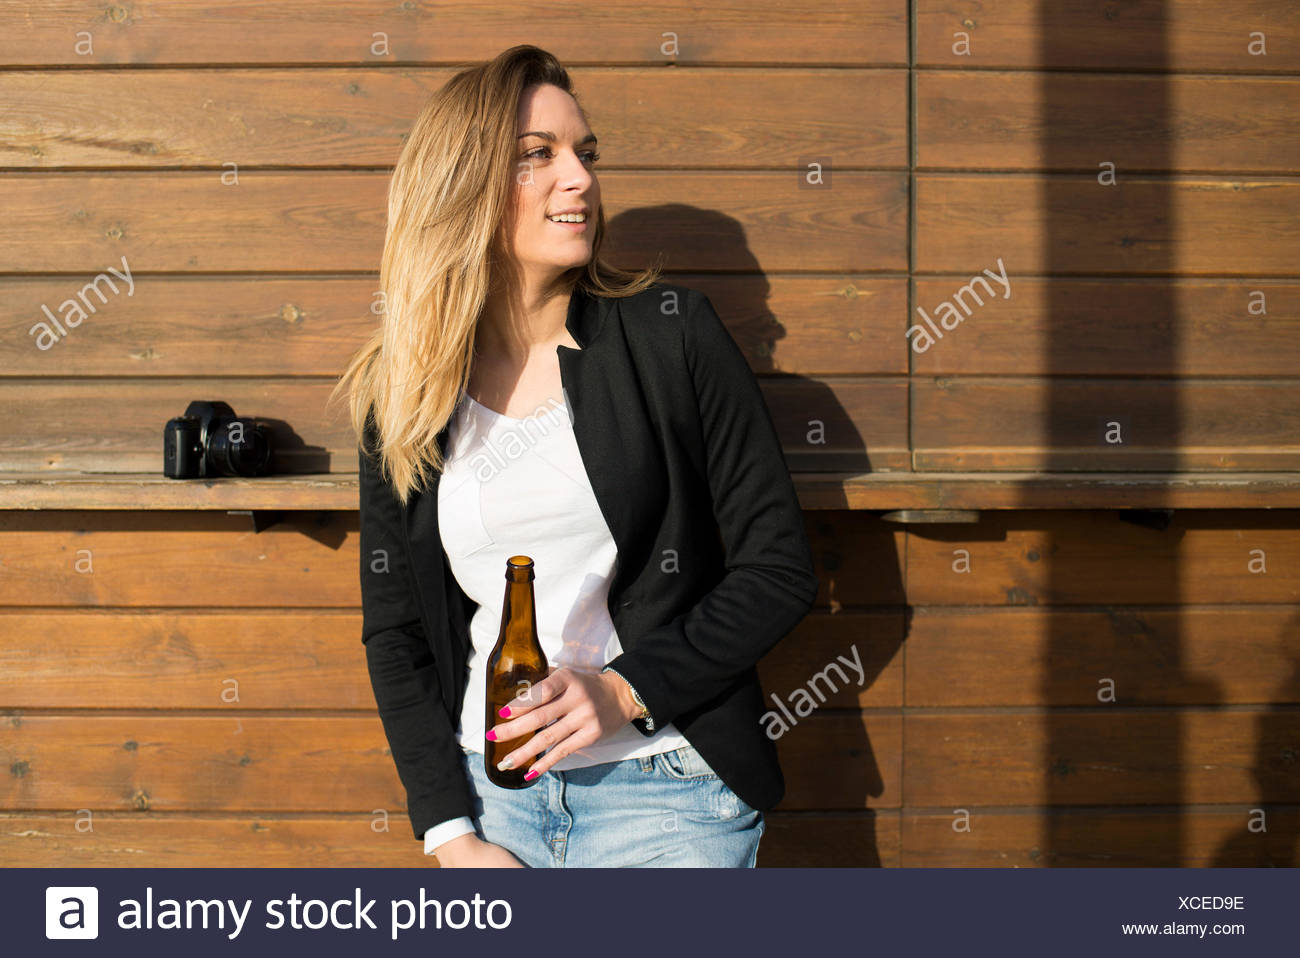 Smiling woman with bottle of beer watching something - Stock Image